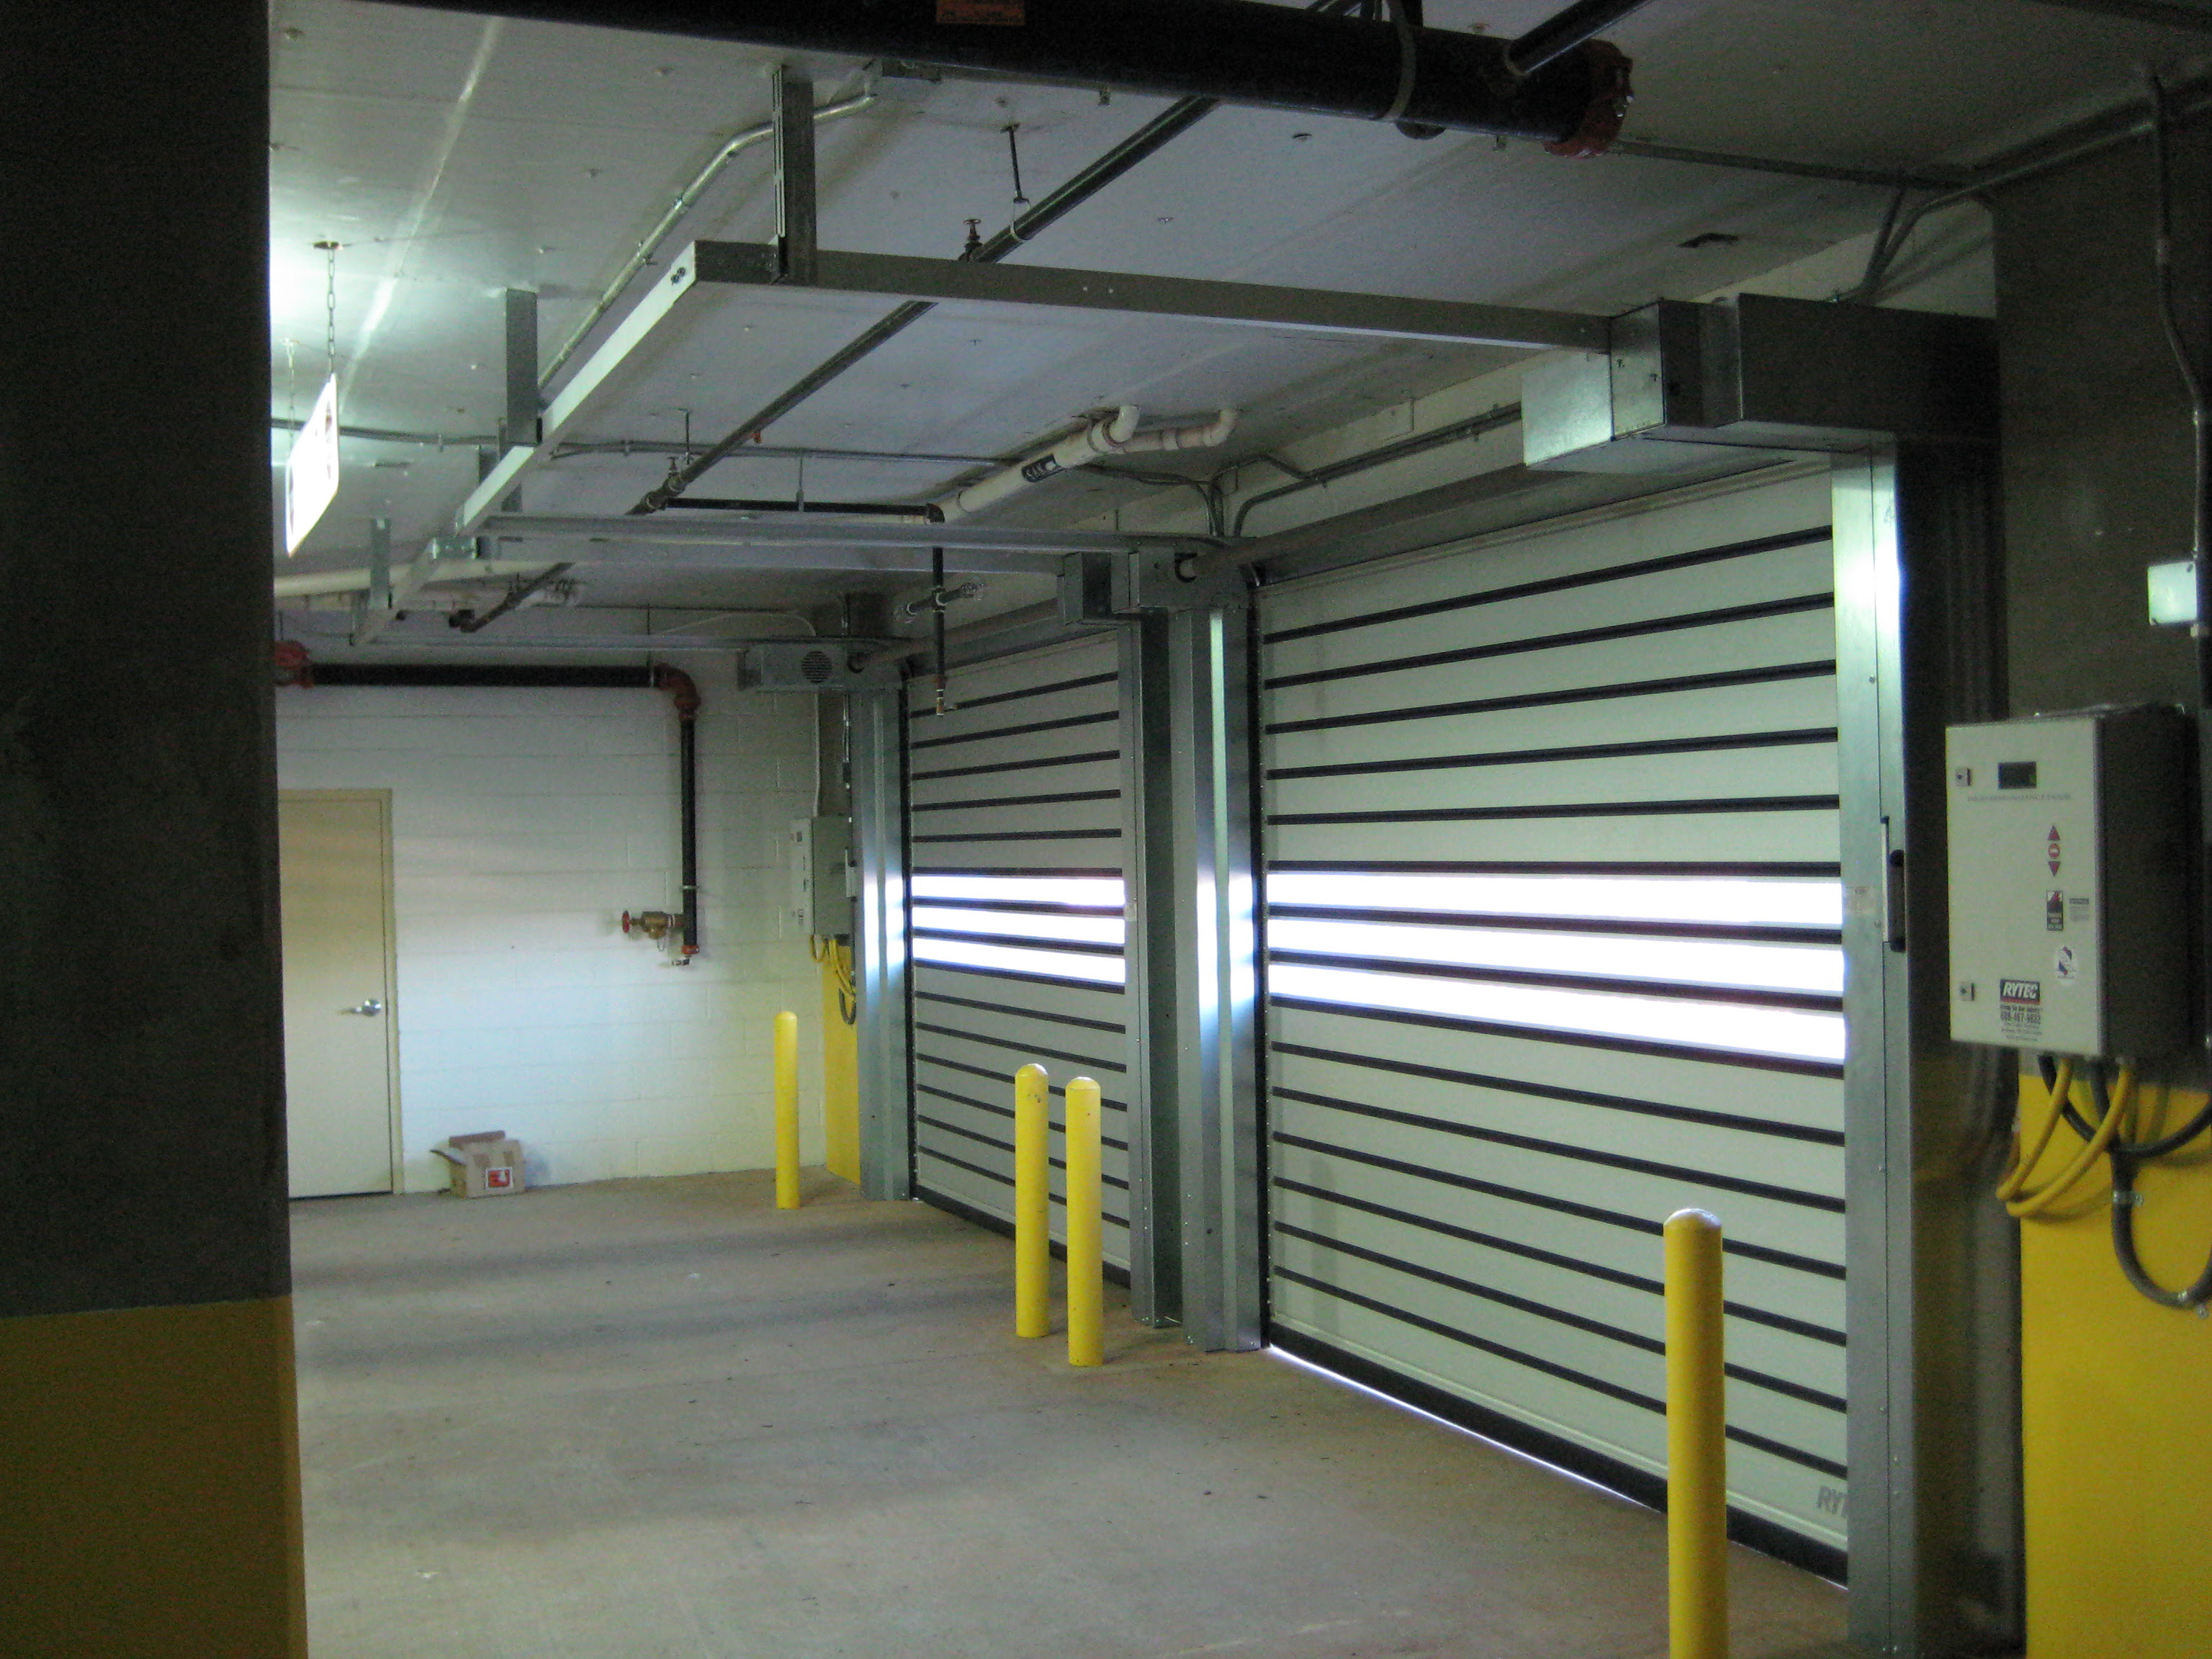 Quick Guide Low Headroom Sectional And Rolling Door Products For Tight Space Environments